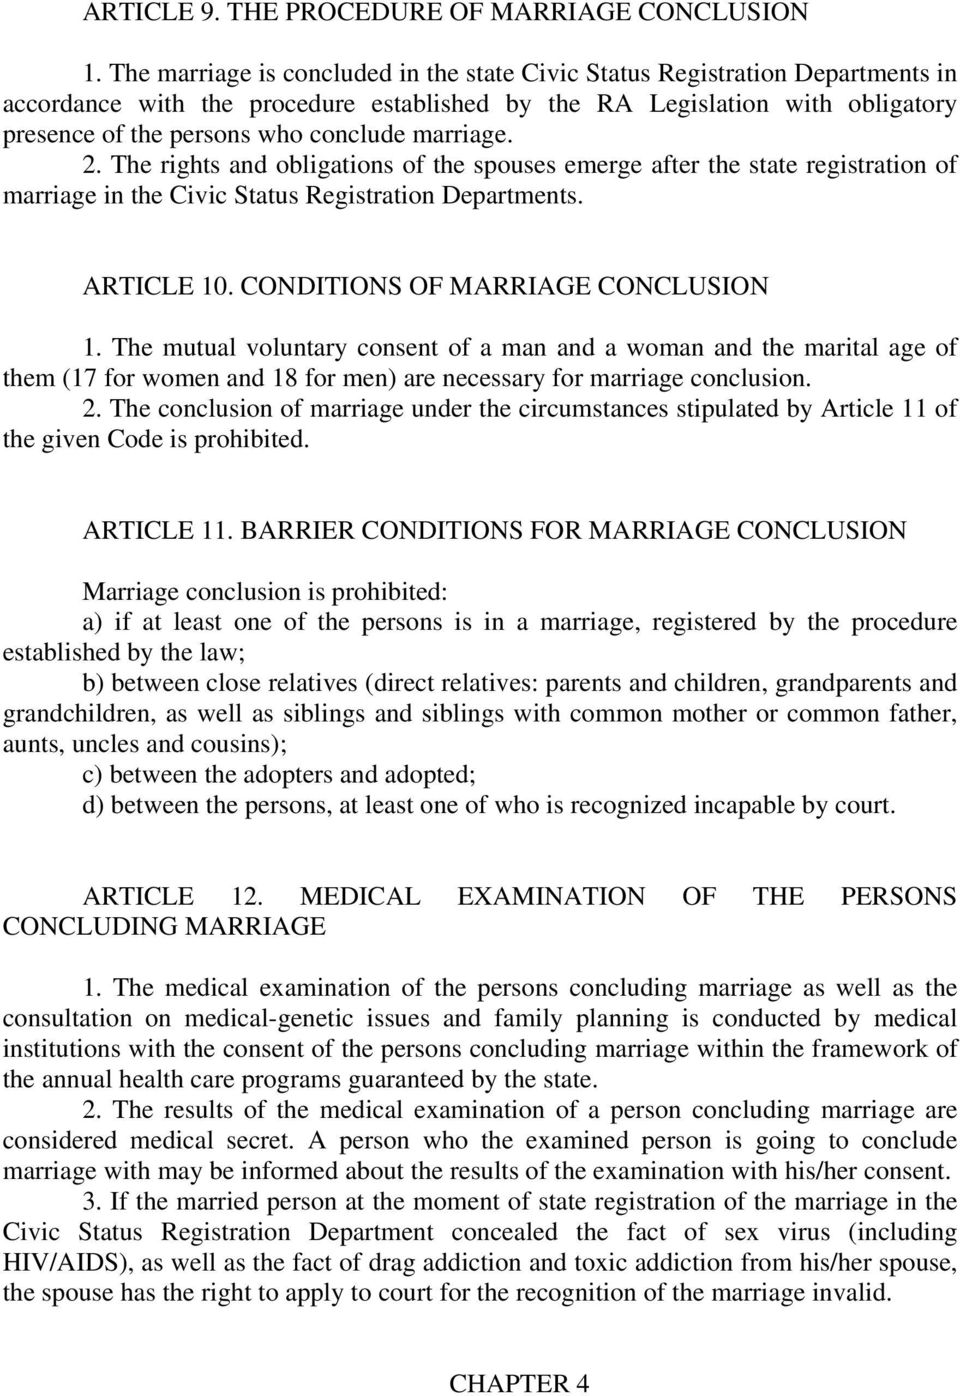 marriage. 2. The rights and obligations of the spouses emerge after the state registration of marriage in the Civic Status Registration Departments. ARTICLE 10. CONDITIONS OF MARRIAGE CONCLUSION 1.